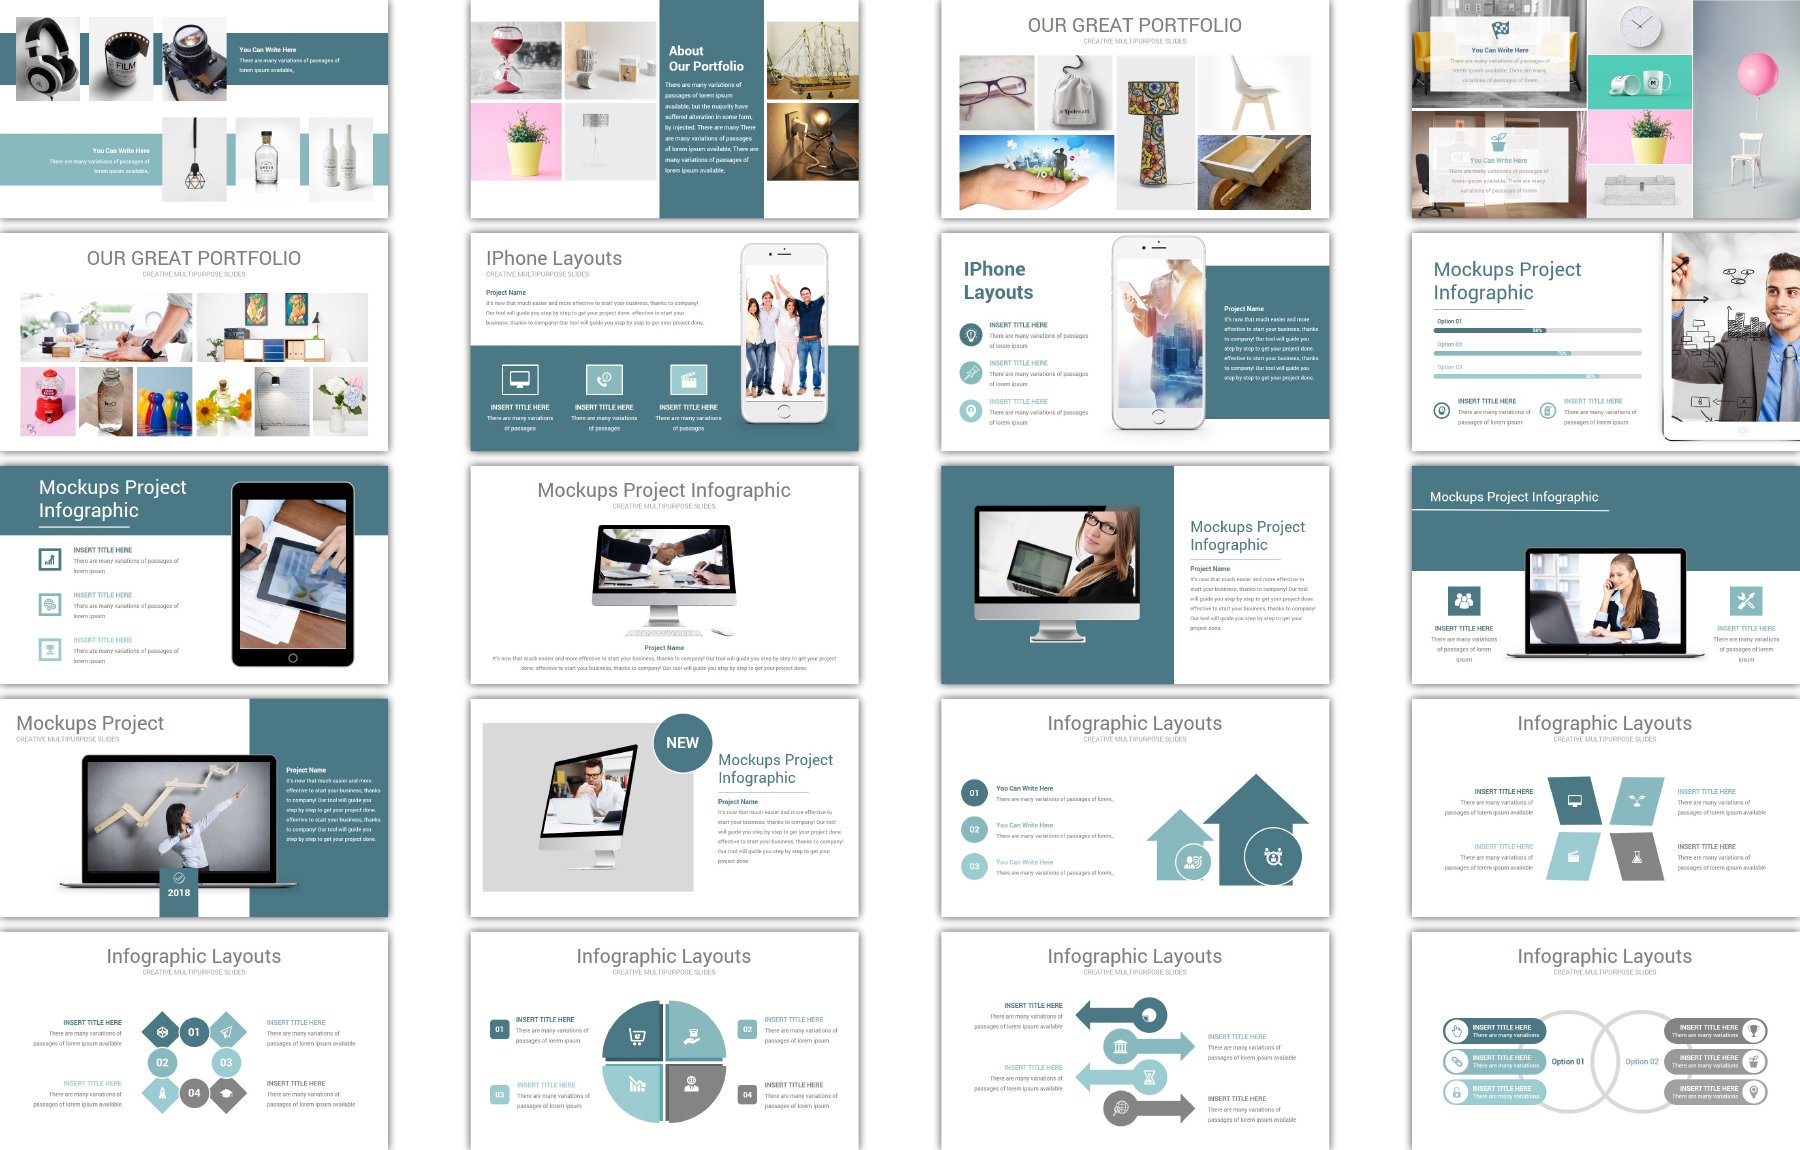 Business proposal powerpoint template 73556 business proposal powerpoint template big screenshot cheaphphosting Image collections